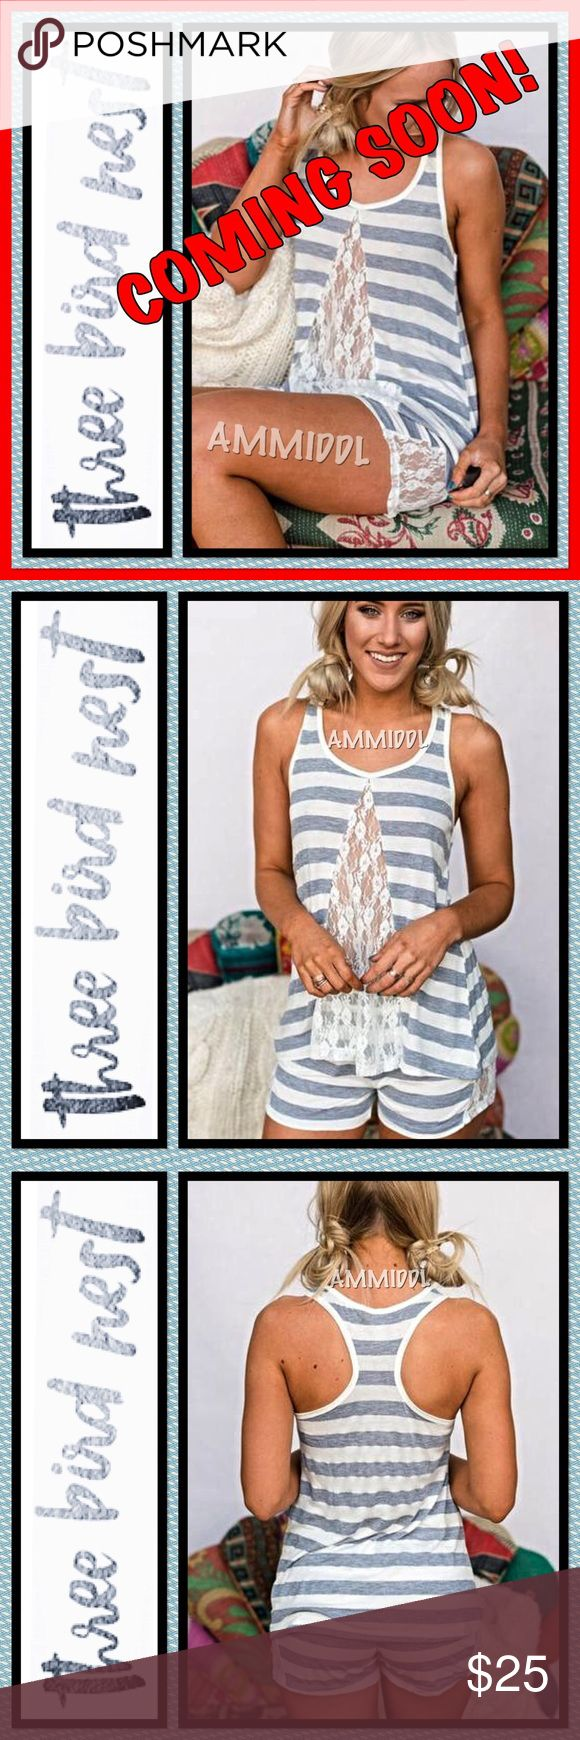 LACE LOUNGE PAJAMA SET LACE LOUNGE PAJAMA SET - Loungewear at its finest! Soft and adorable PJ's sleeping set for weekends, sleeping in or just lounging around the house.Light striped two piece pajamas lounge set with lace inset in the tank and boy cut shorts.   Stretchy, soft and so comfortable!  Available in two sizes:  XS/S Fits sizes 0-6 M/L Fits sizes 8-12 Three Bird Nest Intimates & Sleepwear Pajamas